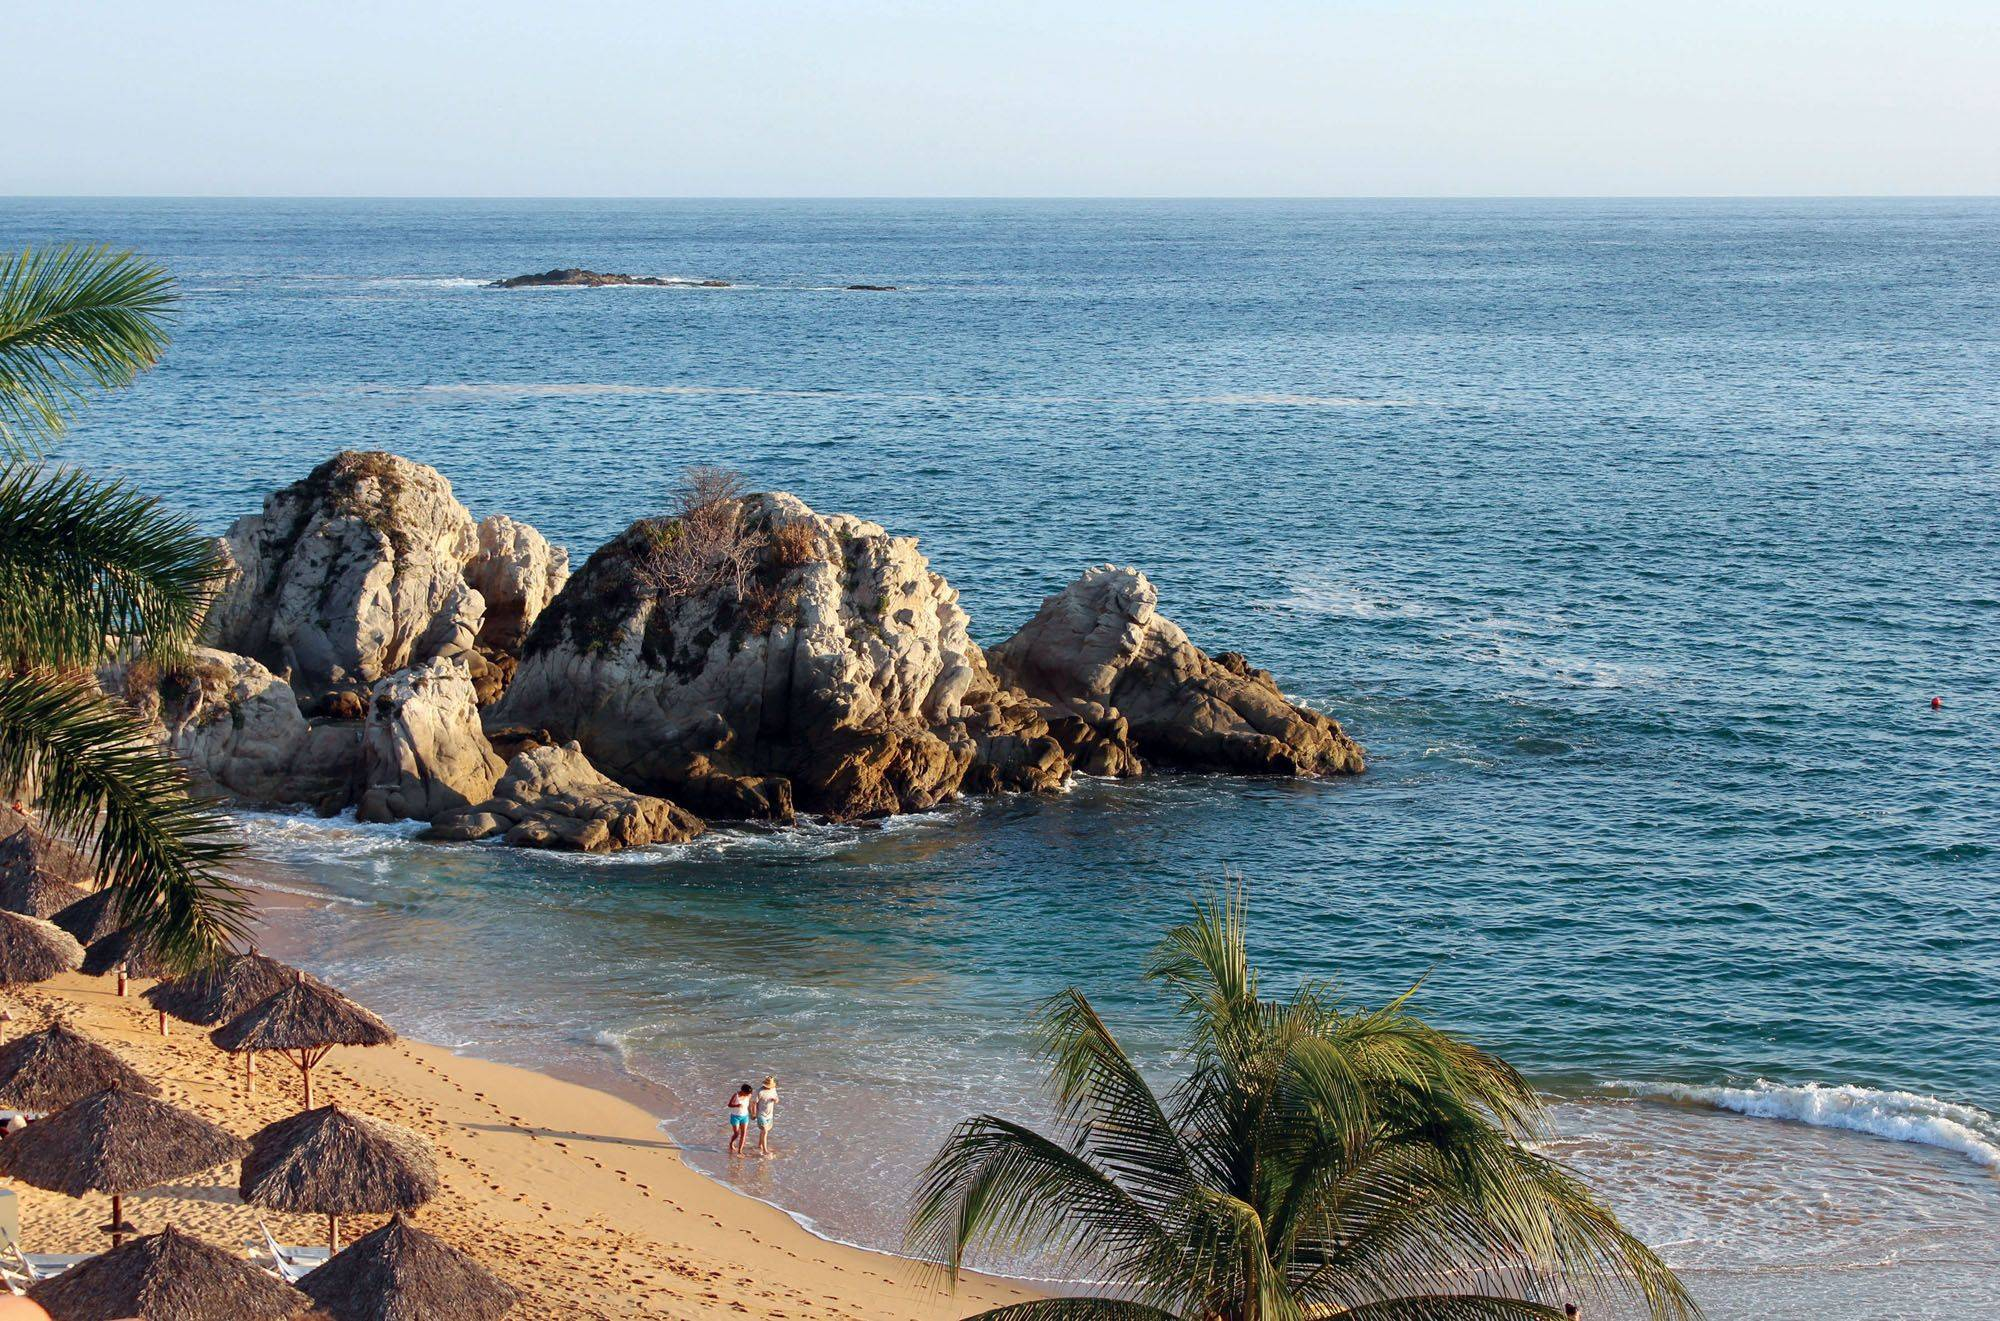 Jeff Farinosi of Vernon HillsA couple walks along the beach in Tangolunda Bay, Huatulco.